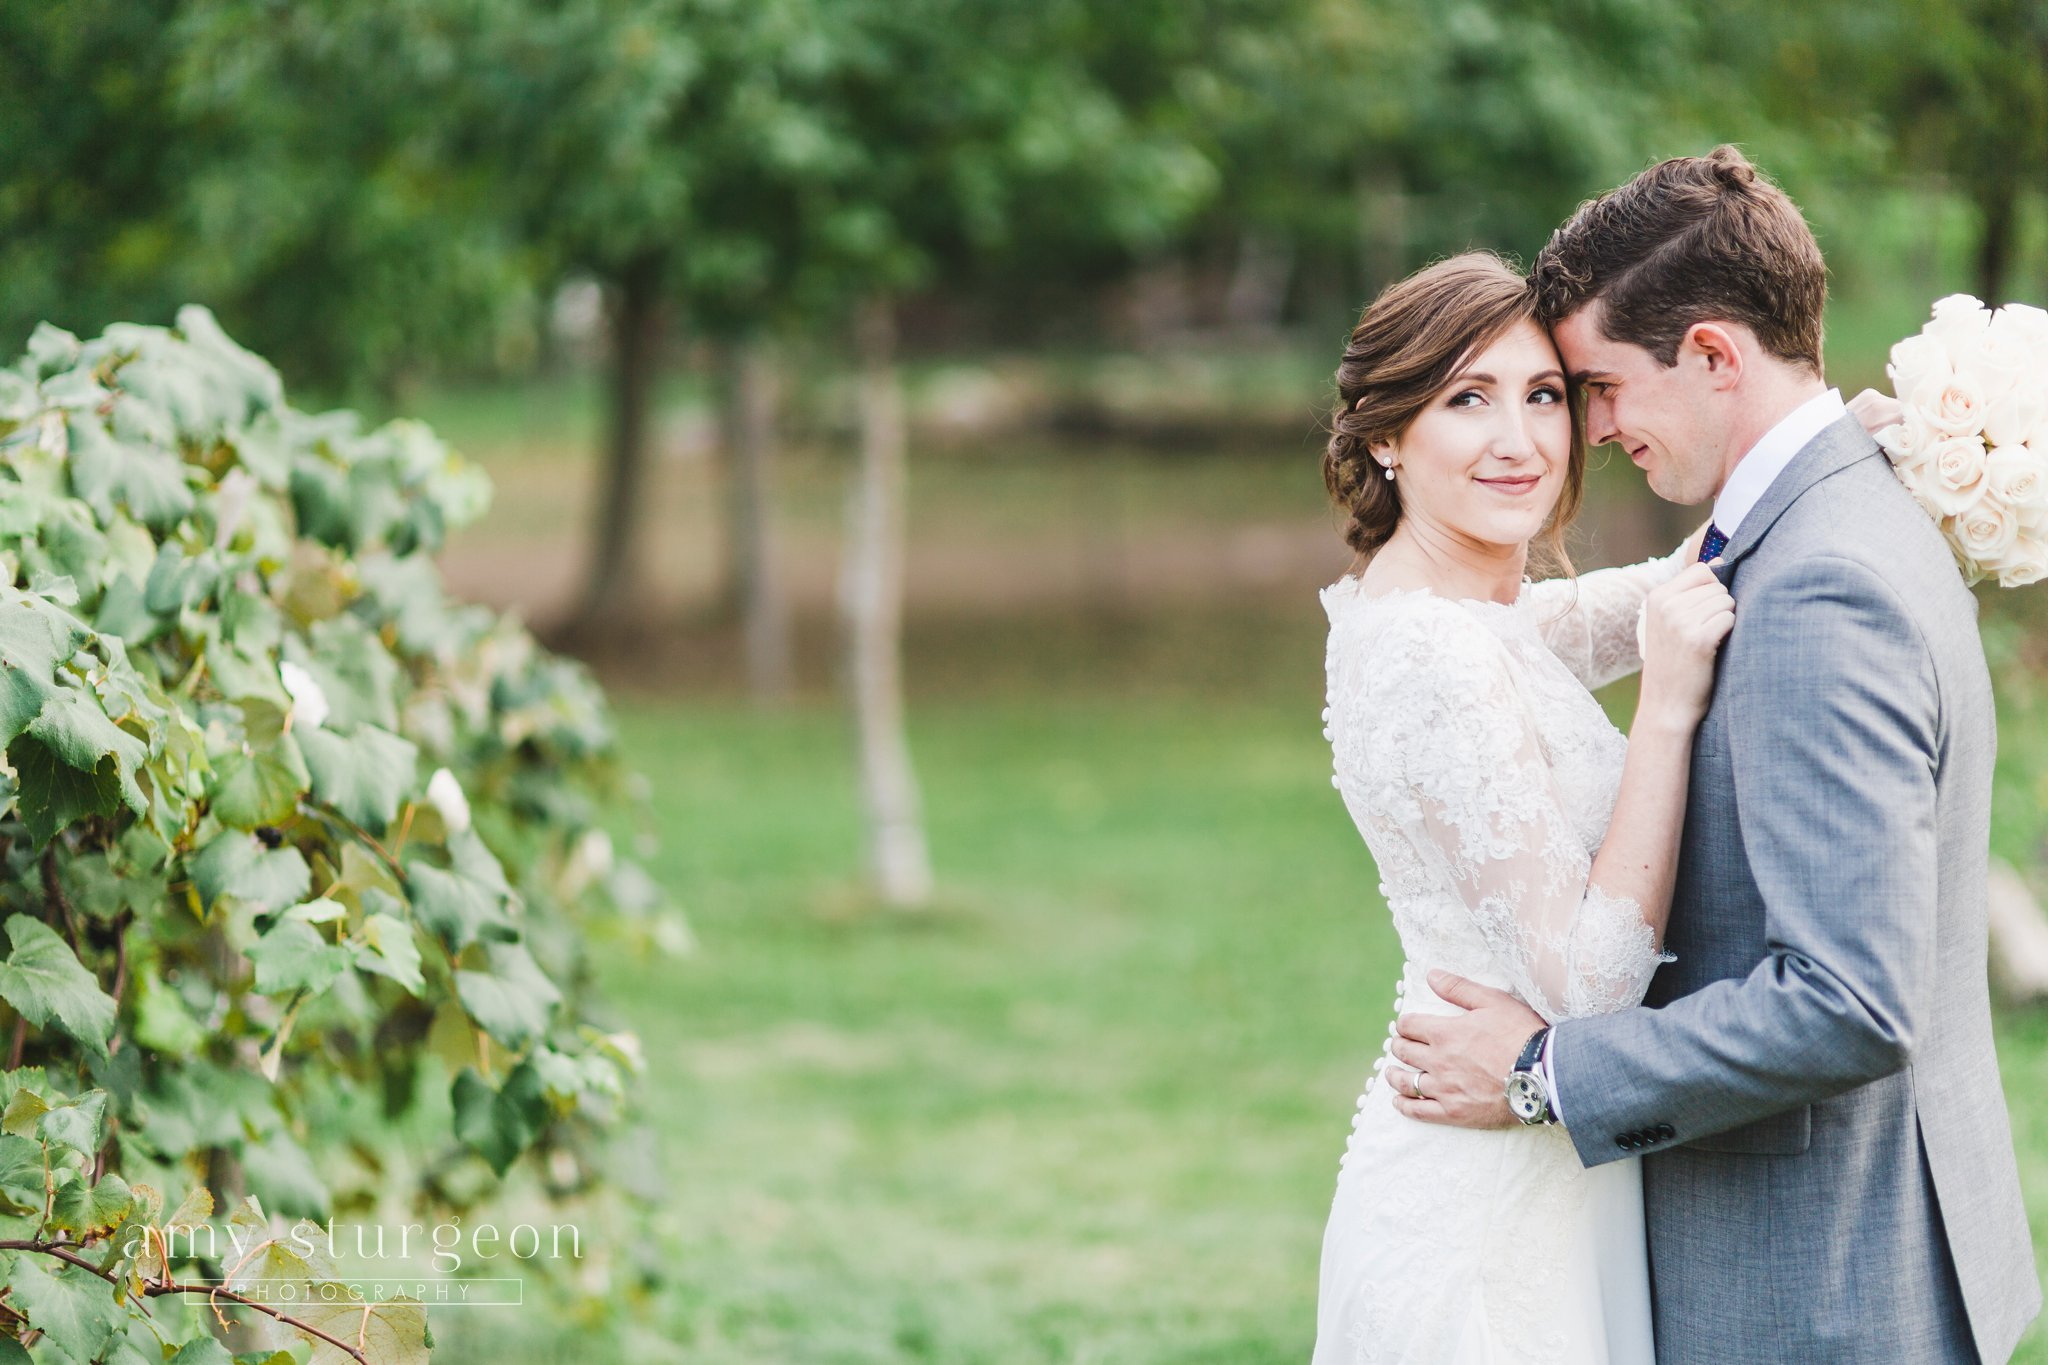 Bride and groom walked down the rows of the vineyard at the alpaca farm wedding